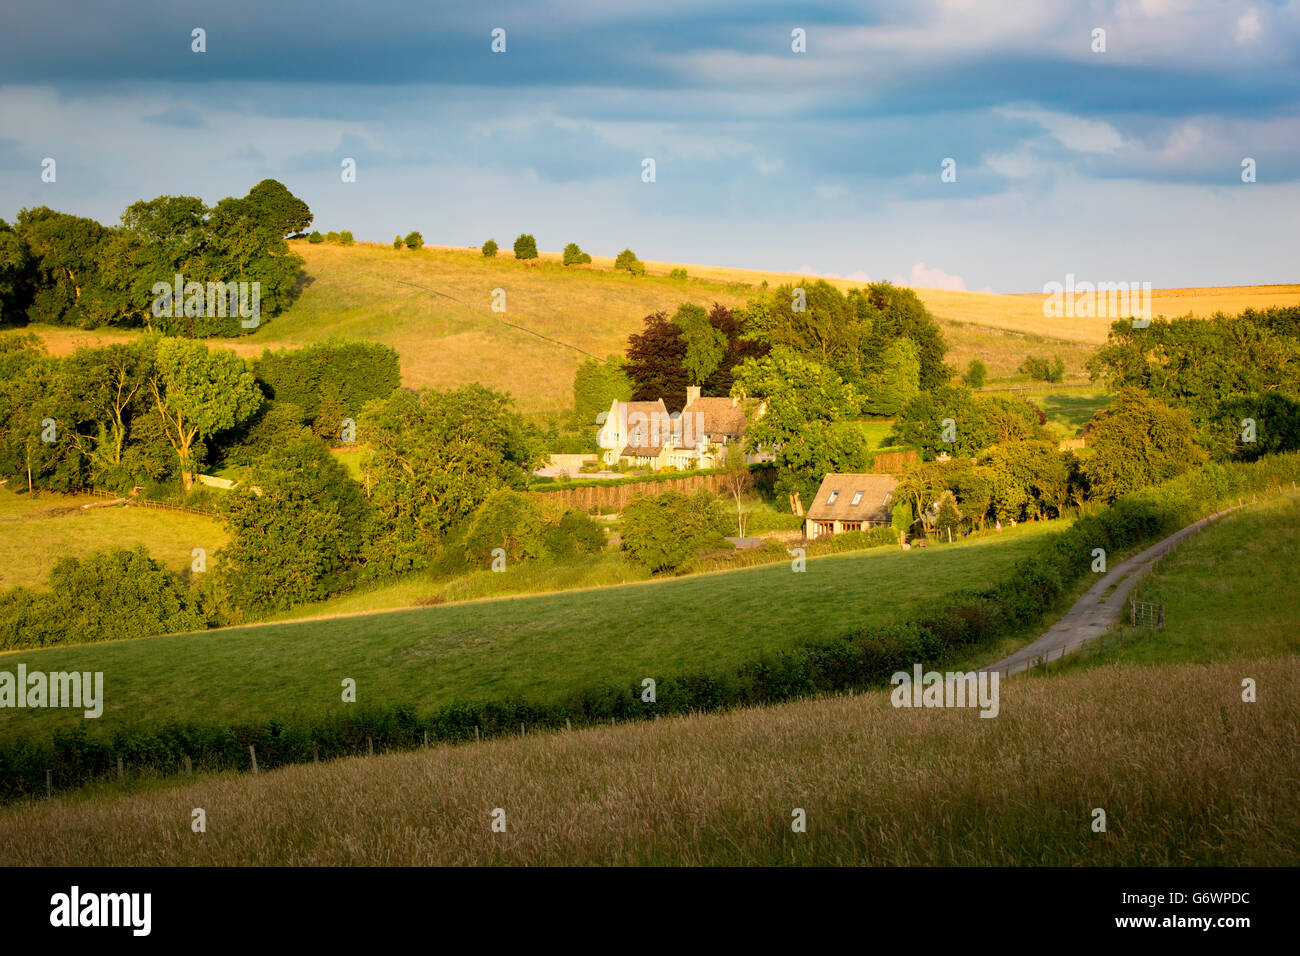 Evening sunlight over Cotswolds cottages near Snowshill, Gloucestershire, England - Stock Image